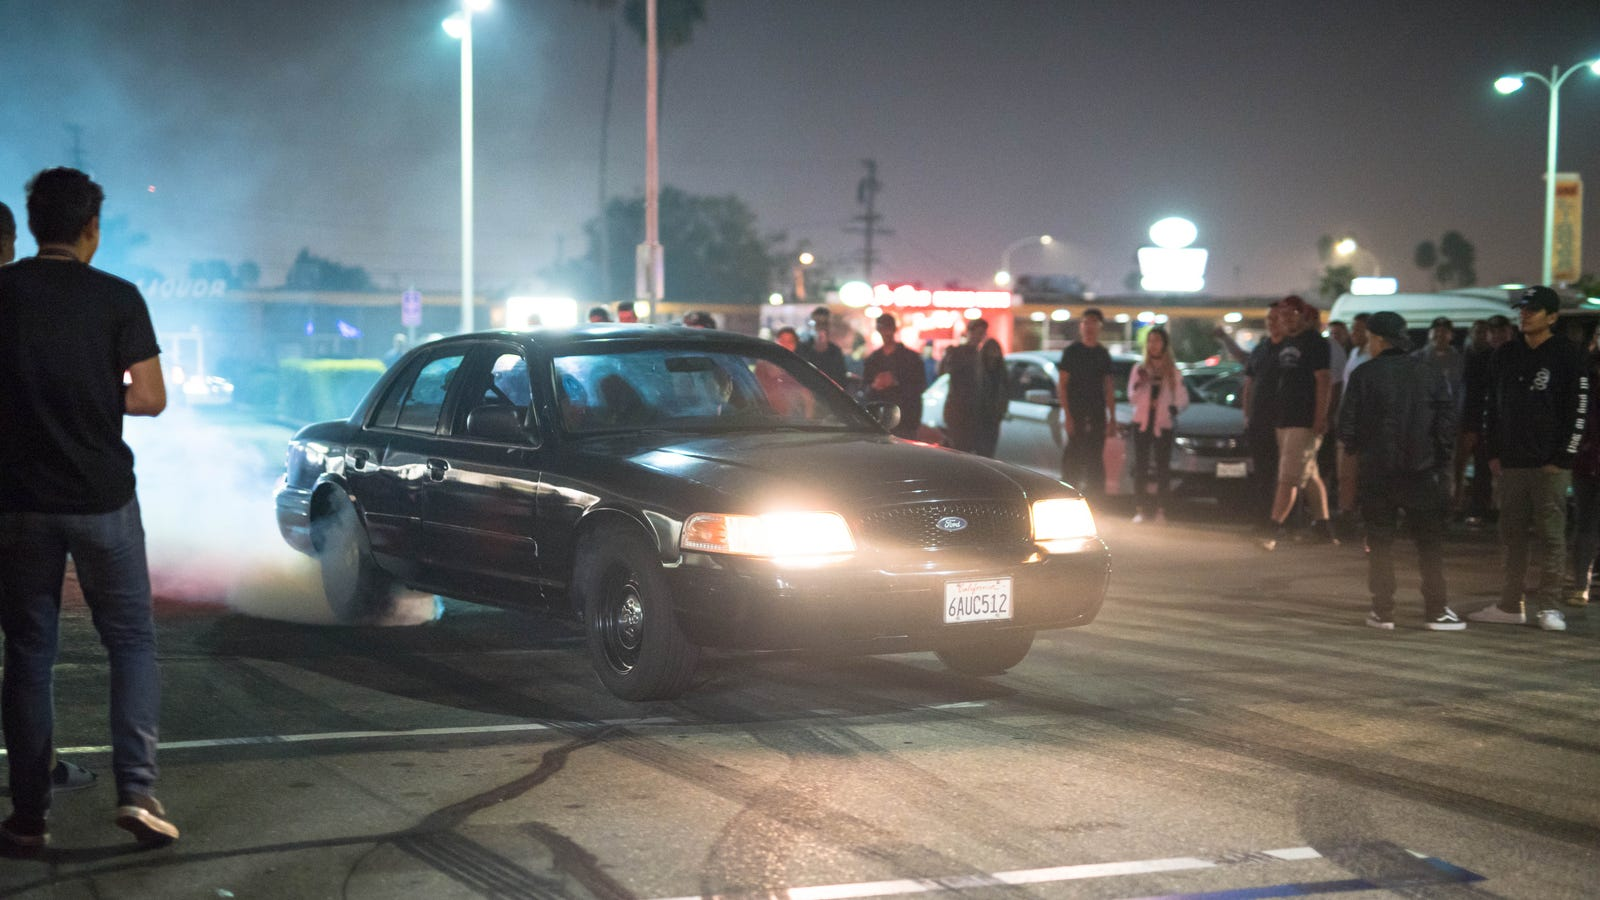 I Went To An Underground Car Meet In America And It Was